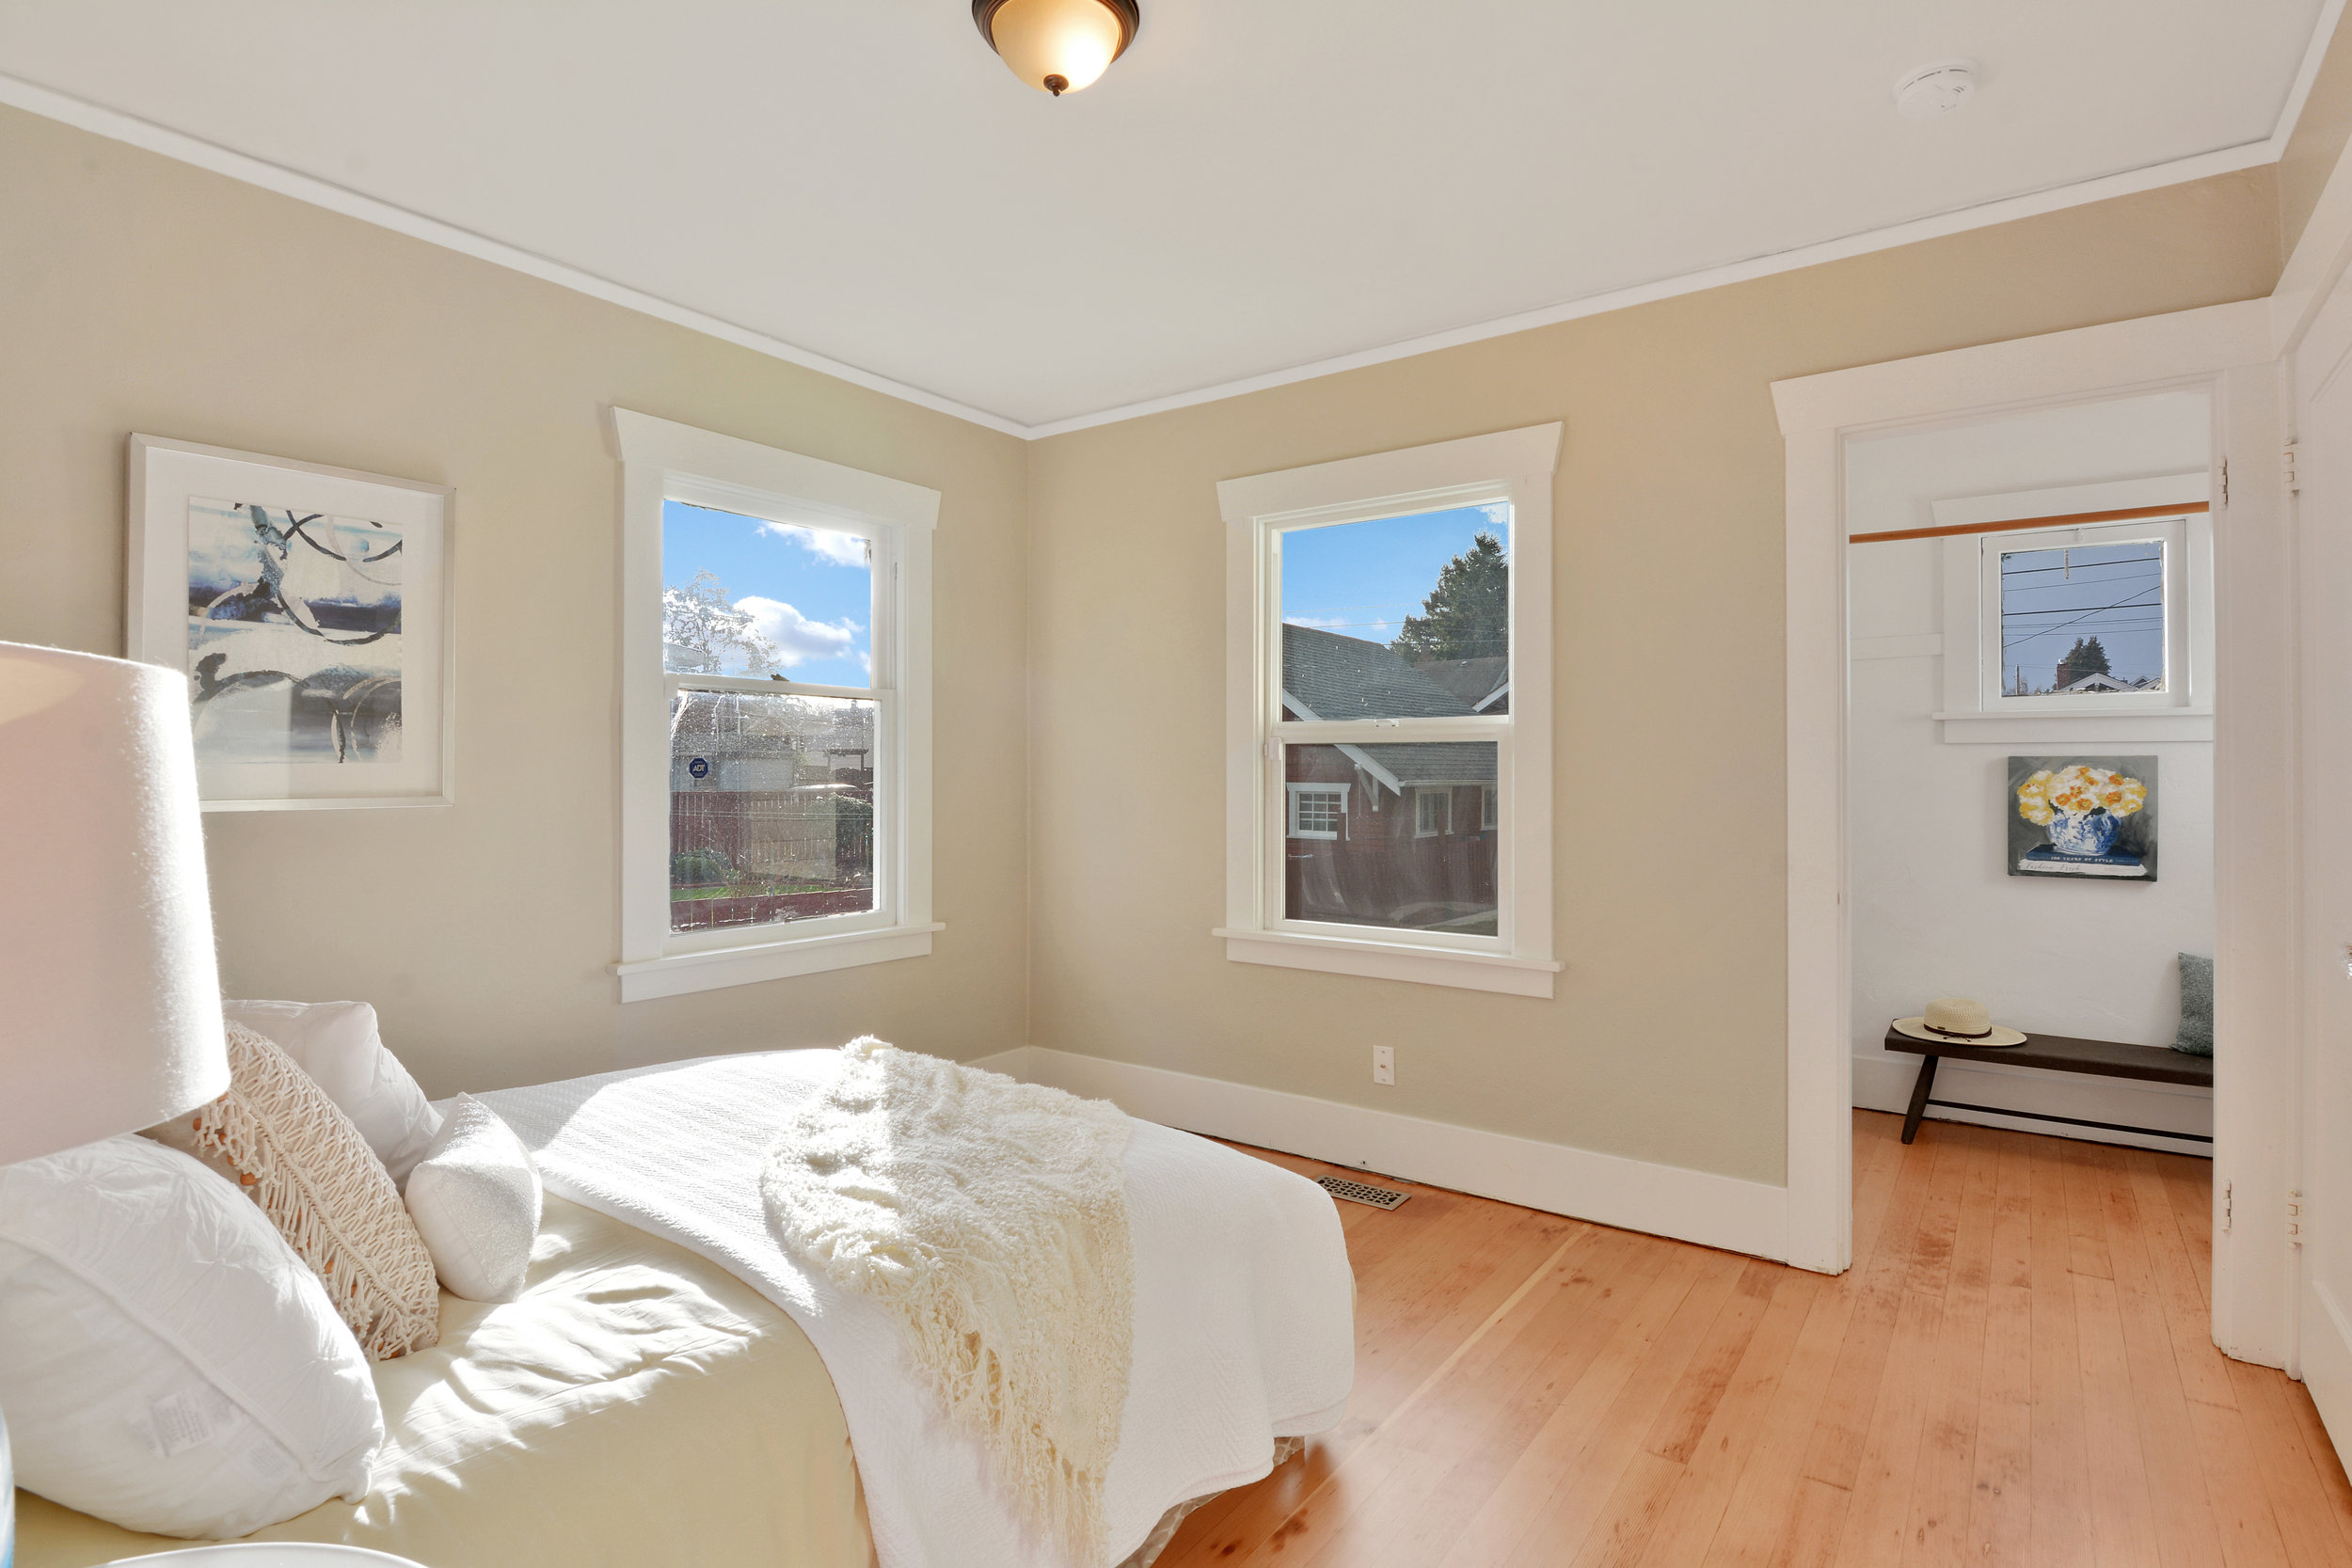 One of two main floor bedrooms with refinished fir floors. This room, at the back of the house, offers a walk in closet, crown molding, and windows facing south and west.